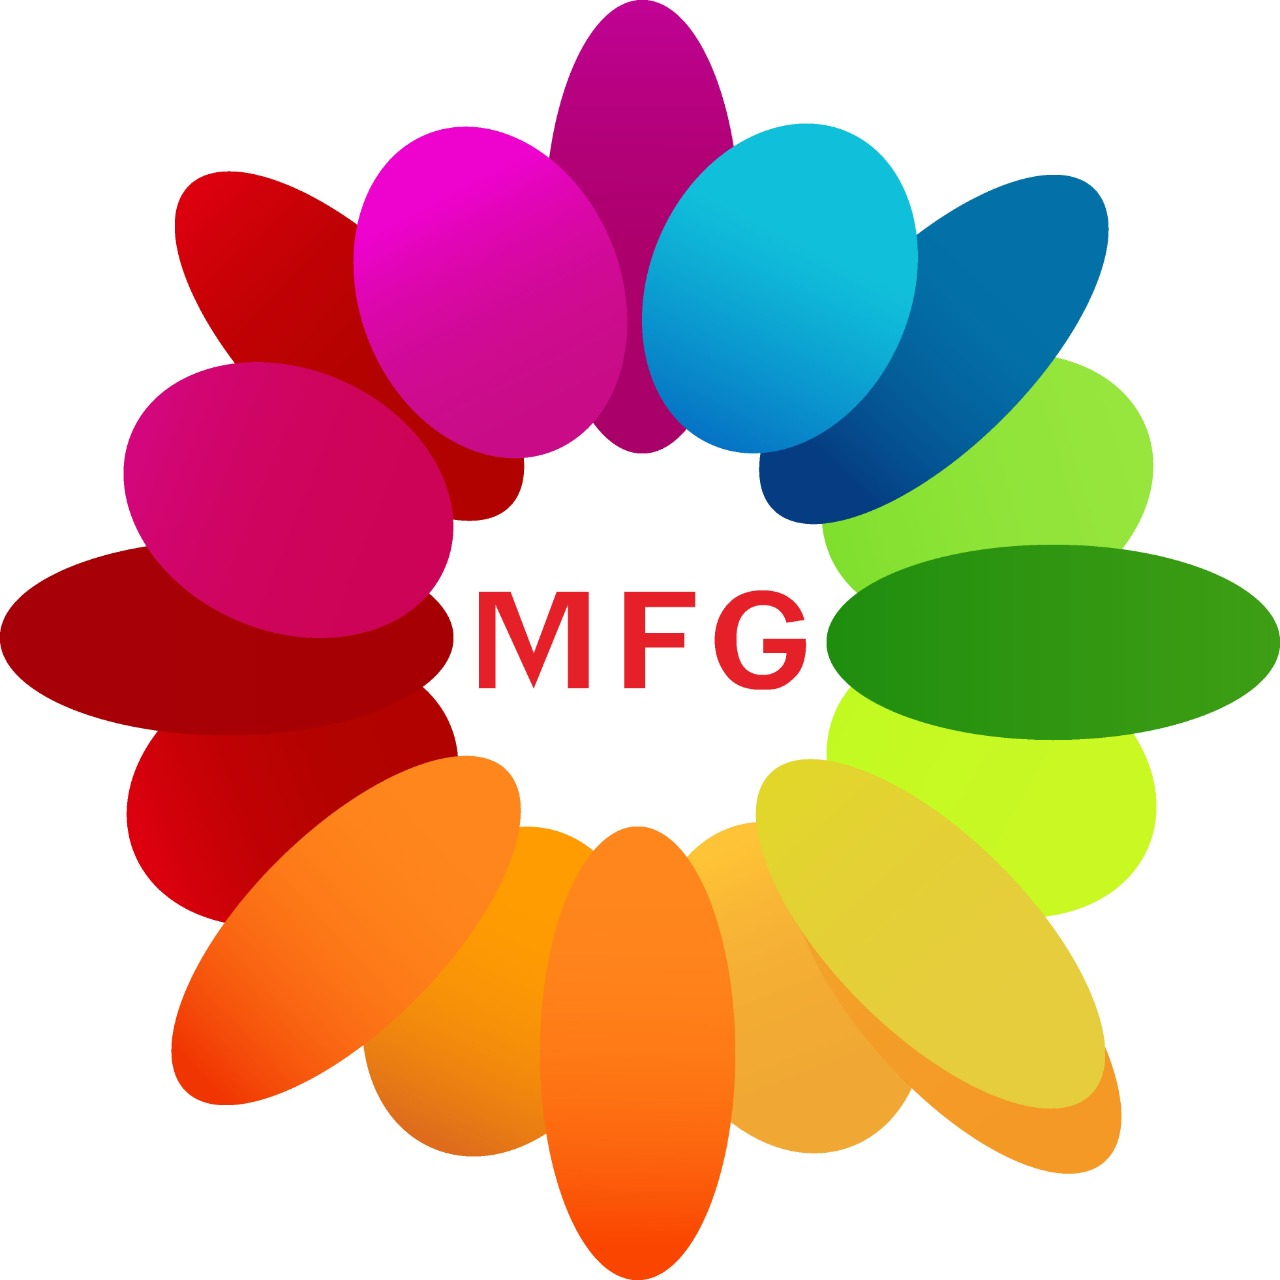 Bunch of 8 red roses with box of 16 pcs rocher ferrero chocolates